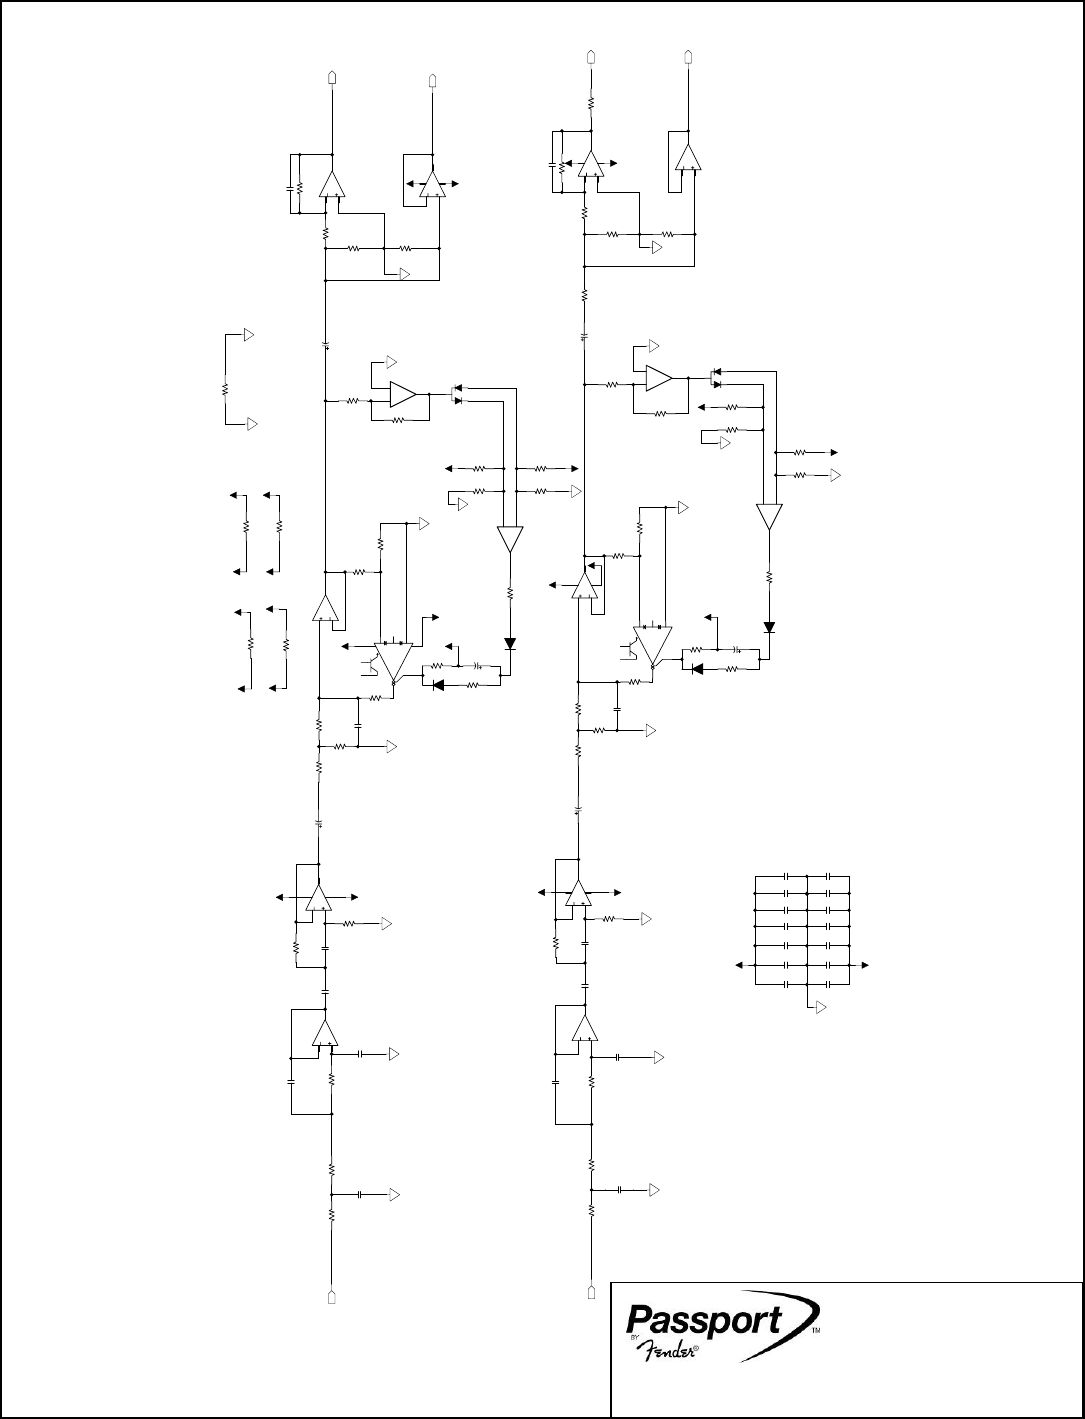 Fender Passport 150 PRO SVC_Man Schematics And Layouts